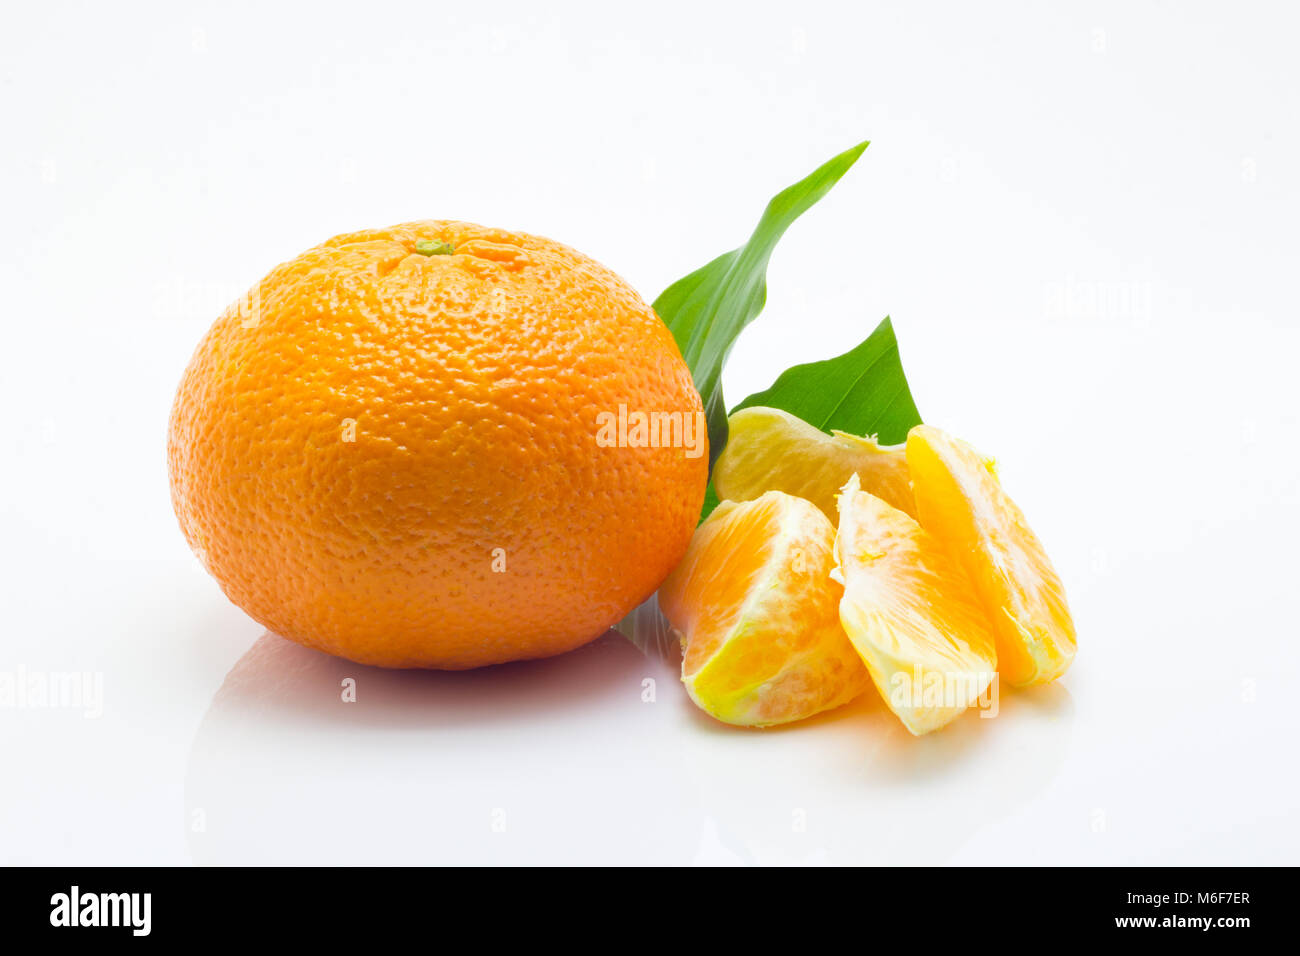 mandarin with green leaf isolated on white background - Stock Image